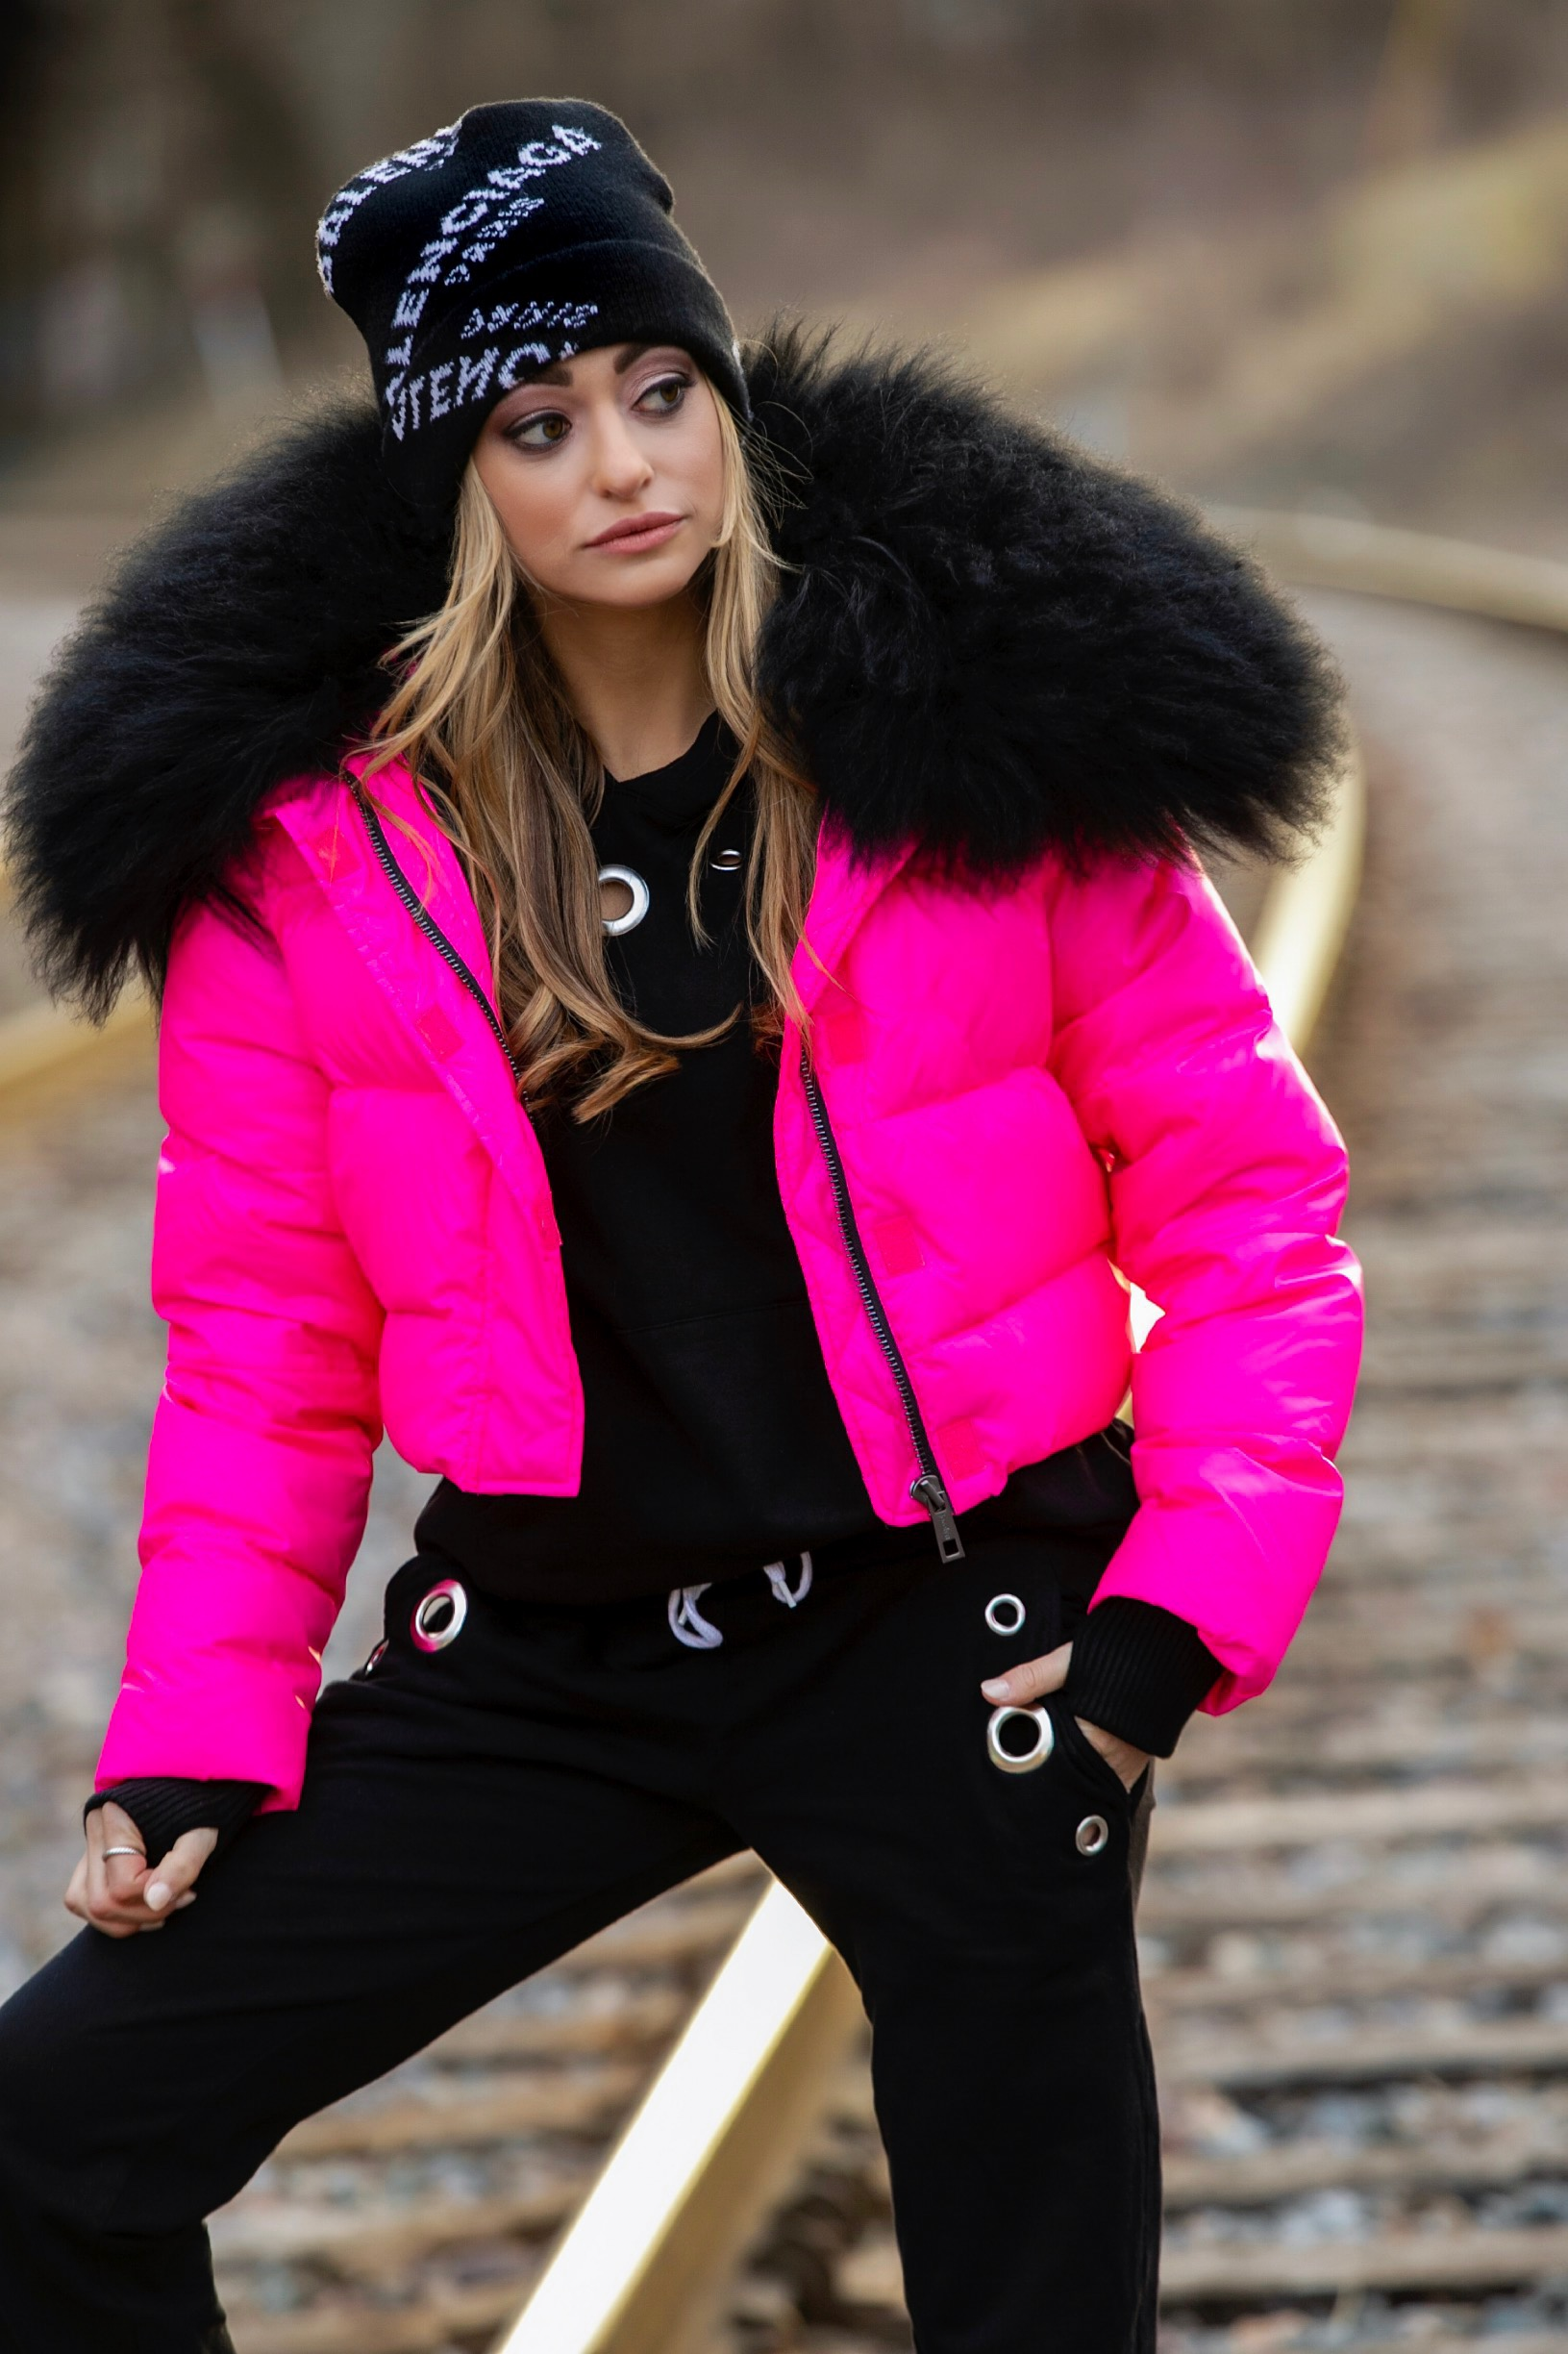 Jocelyn pink puffer jacket on Lauren Recchia styled with a Monrow sweatsuit and Balenciaga beanie